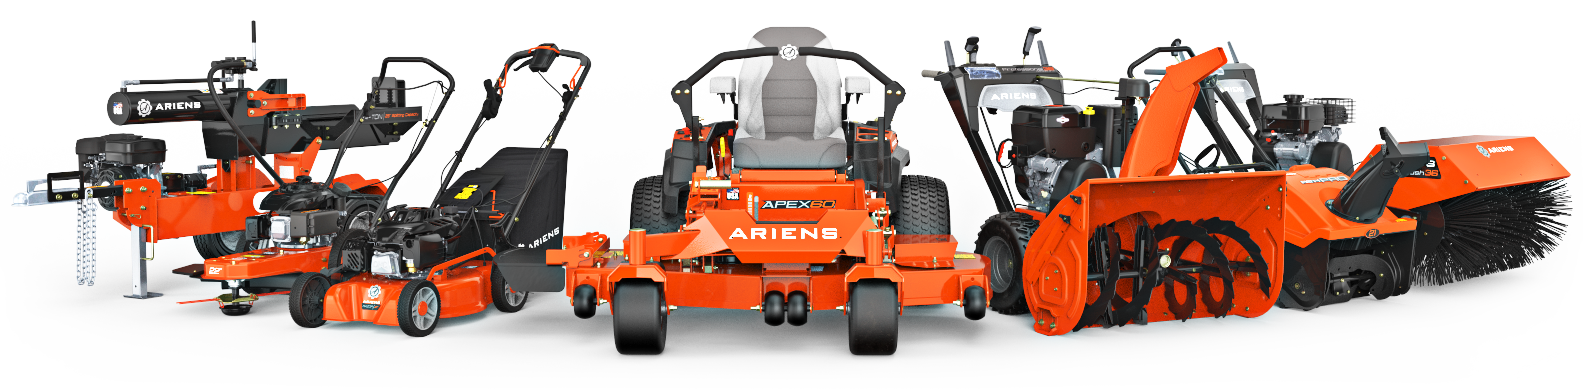 Ariens zero turn lawn mowers